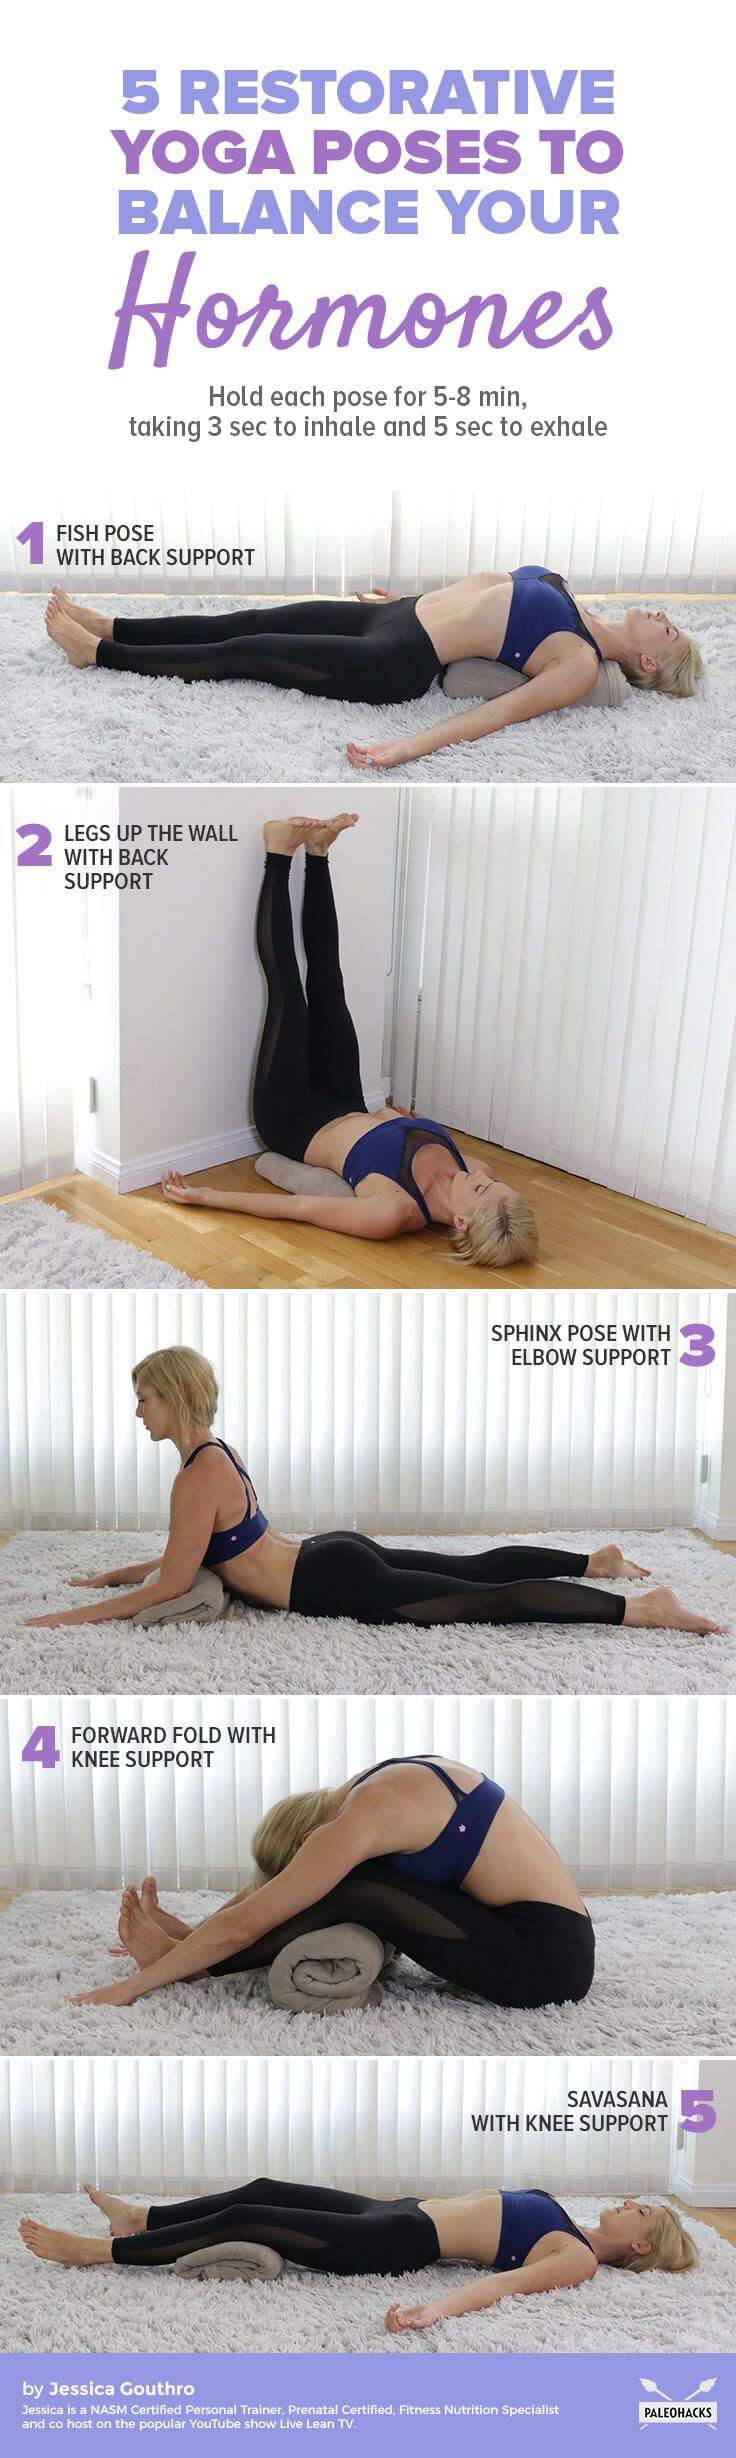 Here is a relaxing yoga routine to help get you back on track.